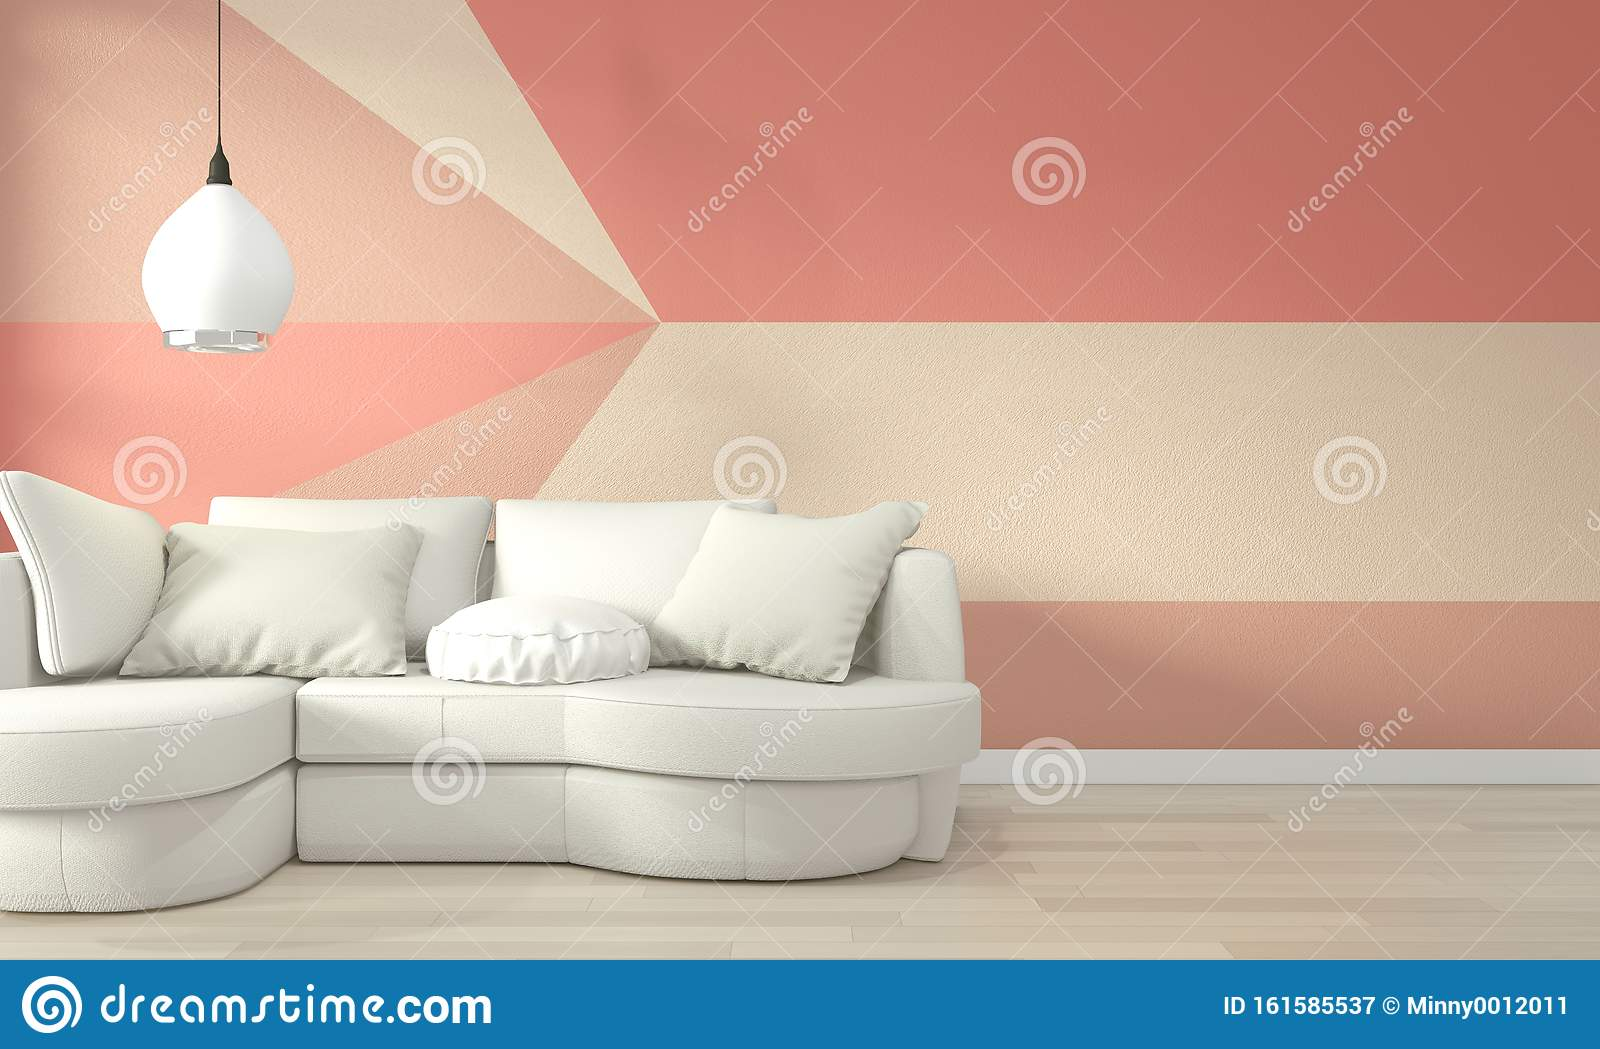 Interior Ideas Of Living Coral Living Room Geometric Wall Art Paint Design Color Full Style On Wooden Floor 3d Rendering Stock Illustration Illustration Of Floor3d Contemporary 161585537